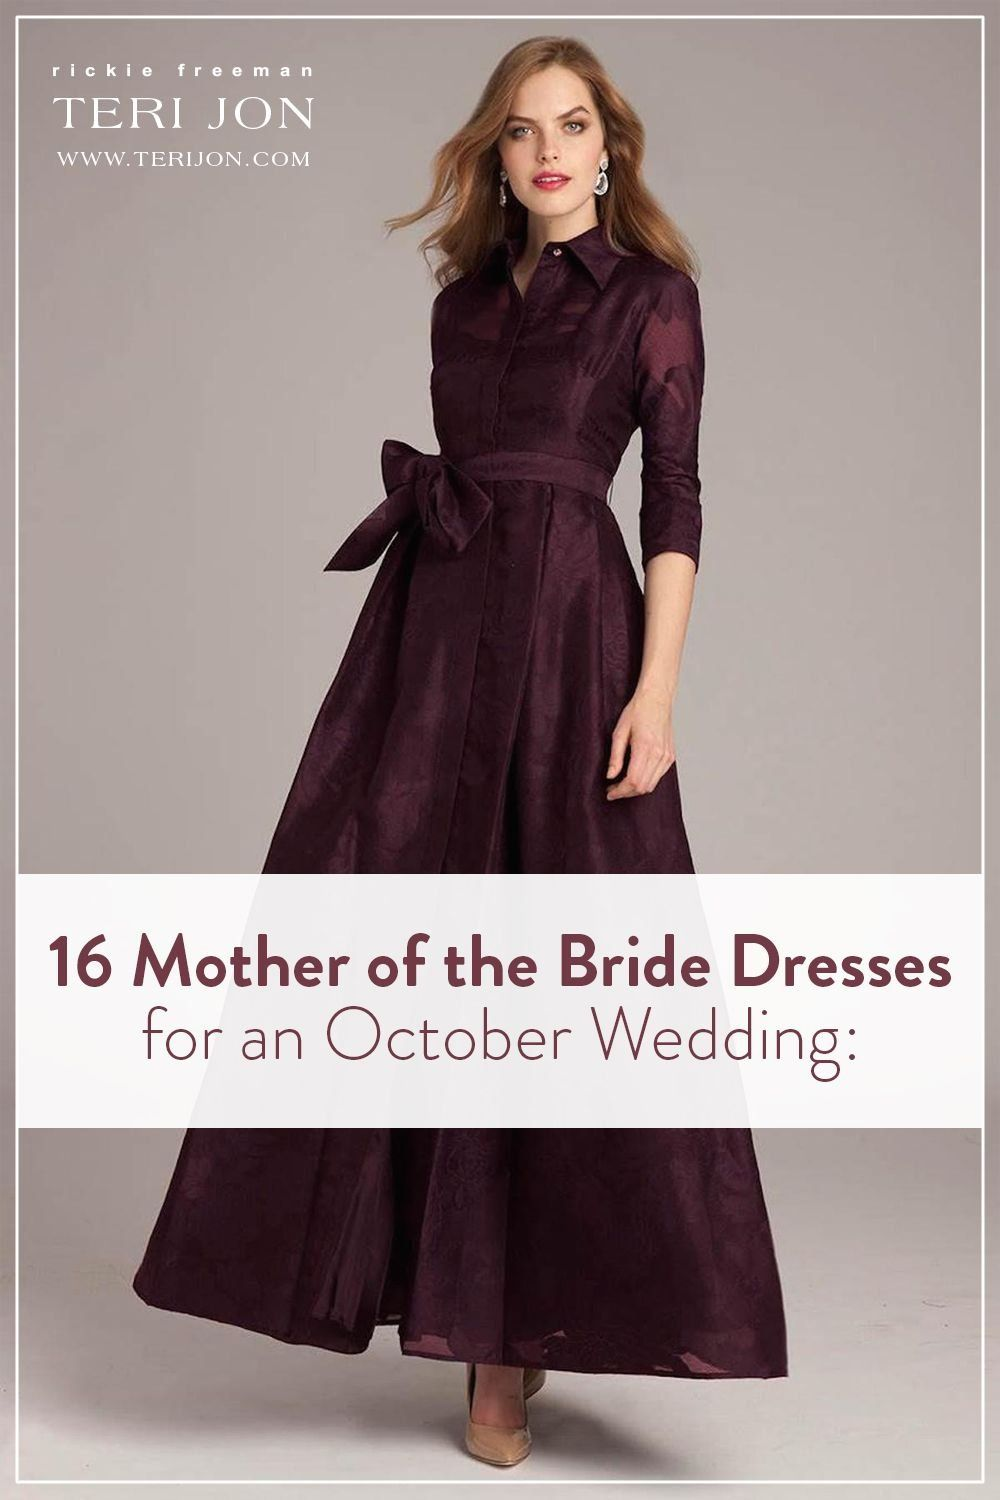 16 mother of the bride dresses for an october wedding